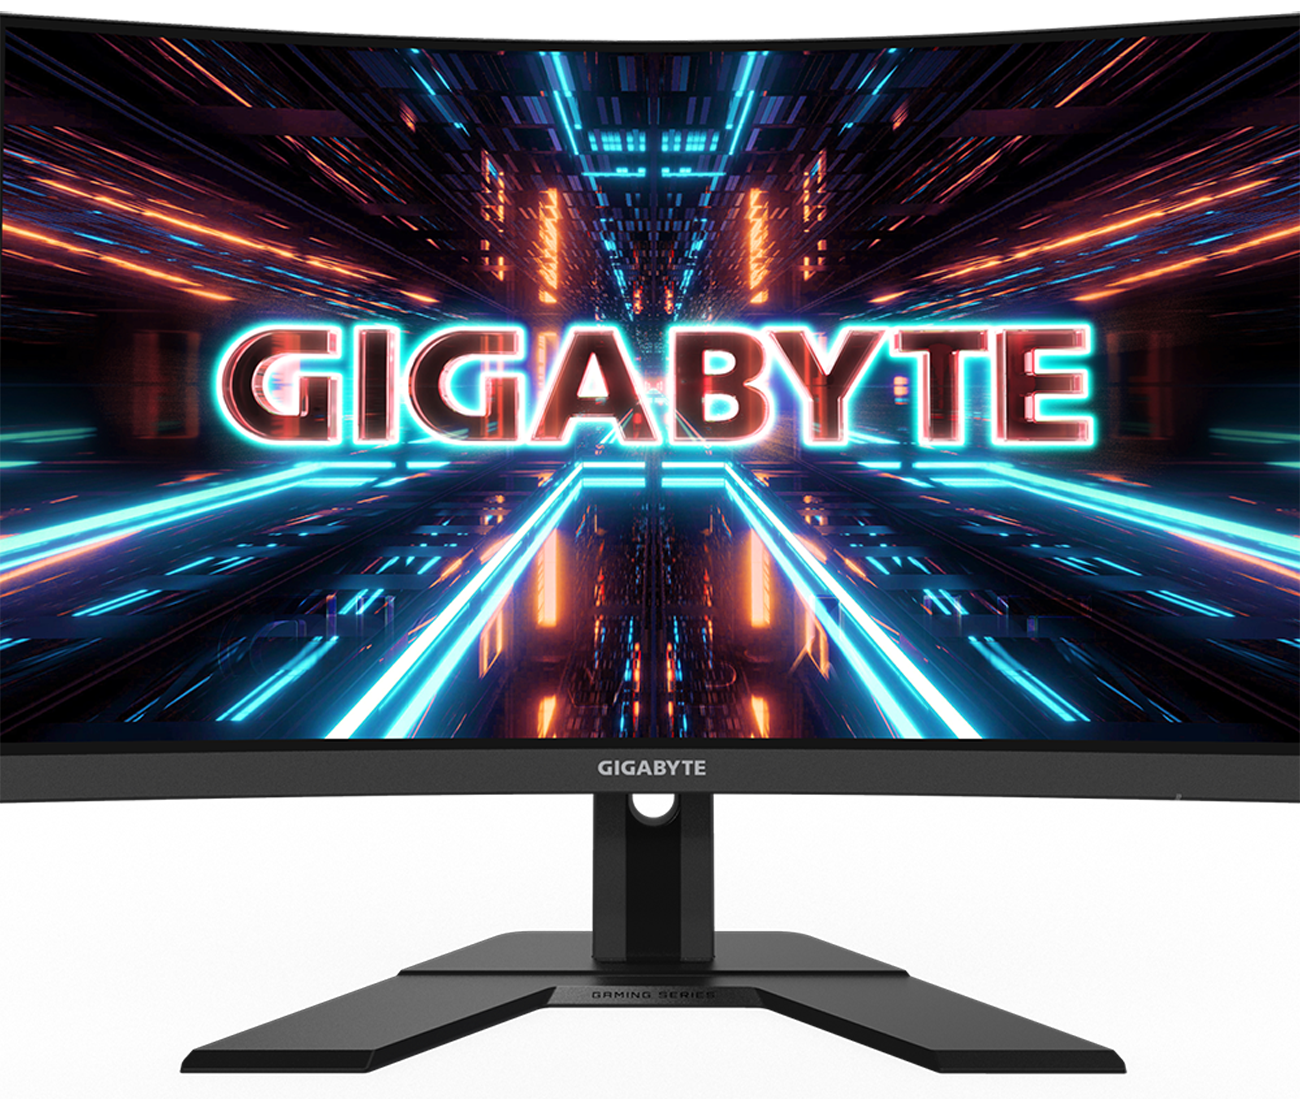 Hero Image: big Gigabyte logo on the center of gaming display.